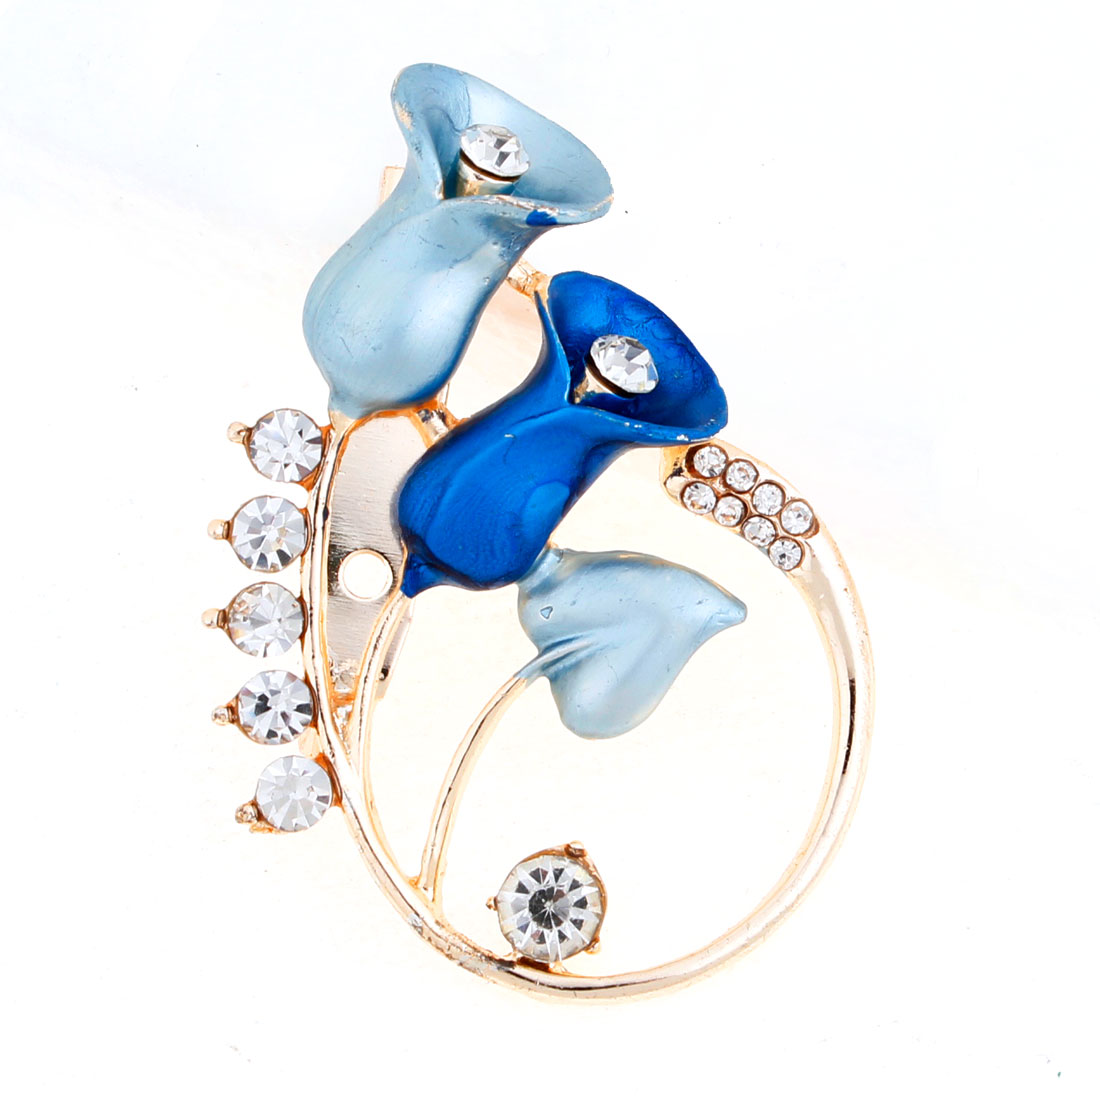 Shiny Rhinestones Accent Pin Brooch Breastpin Blue for Ladies